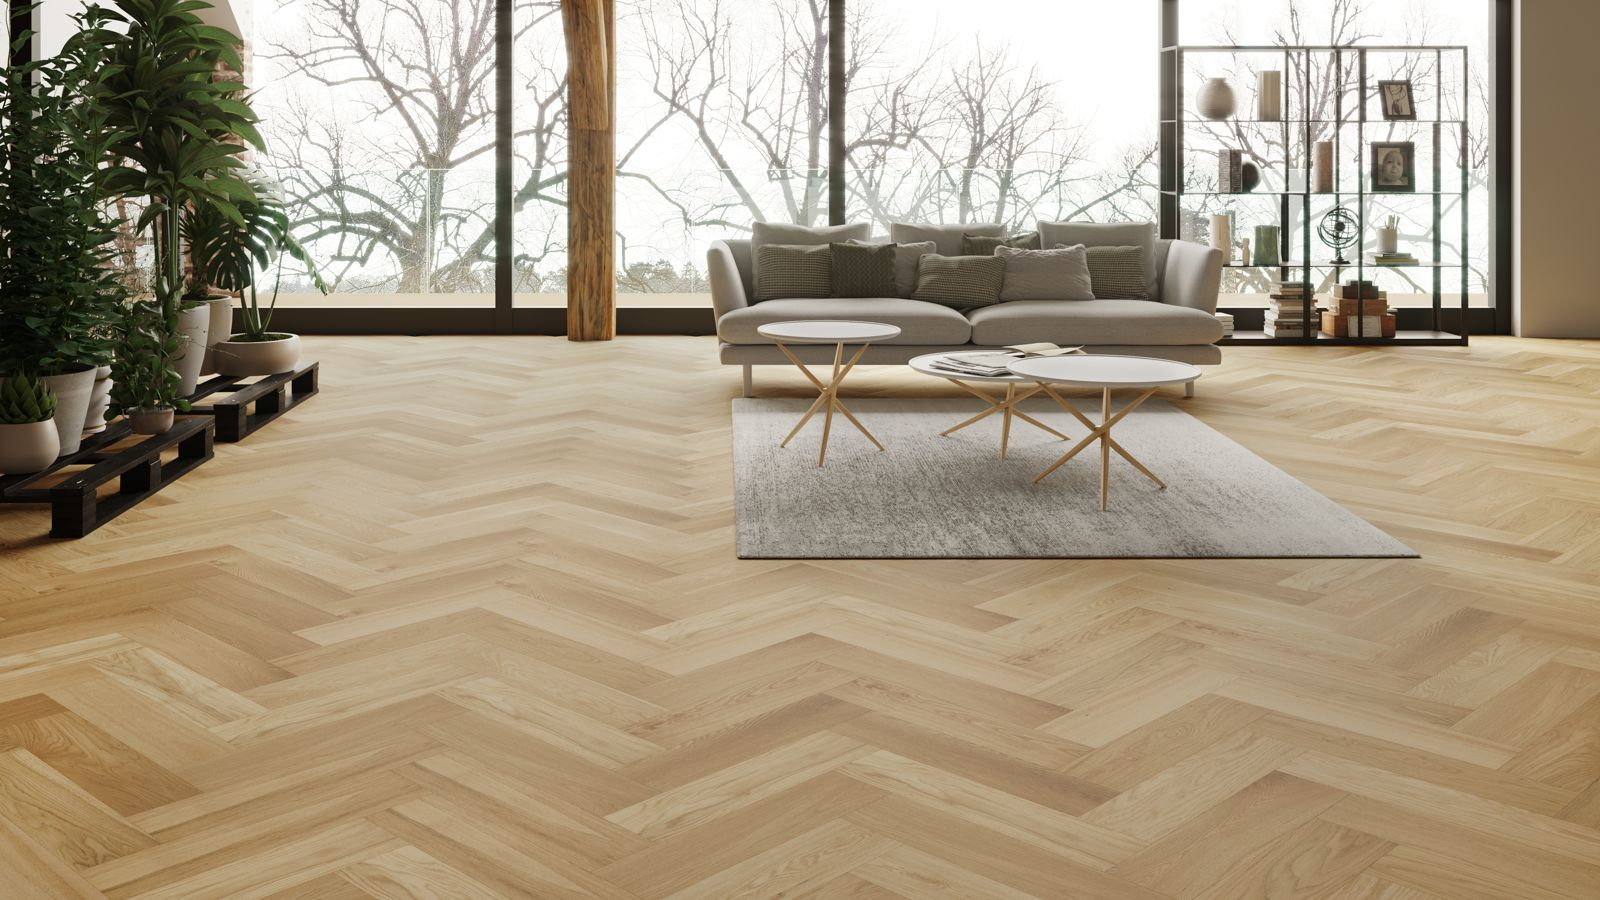 parquet floor natura oak brushed matt lacquer herringbone engineered parquet OUVLODL